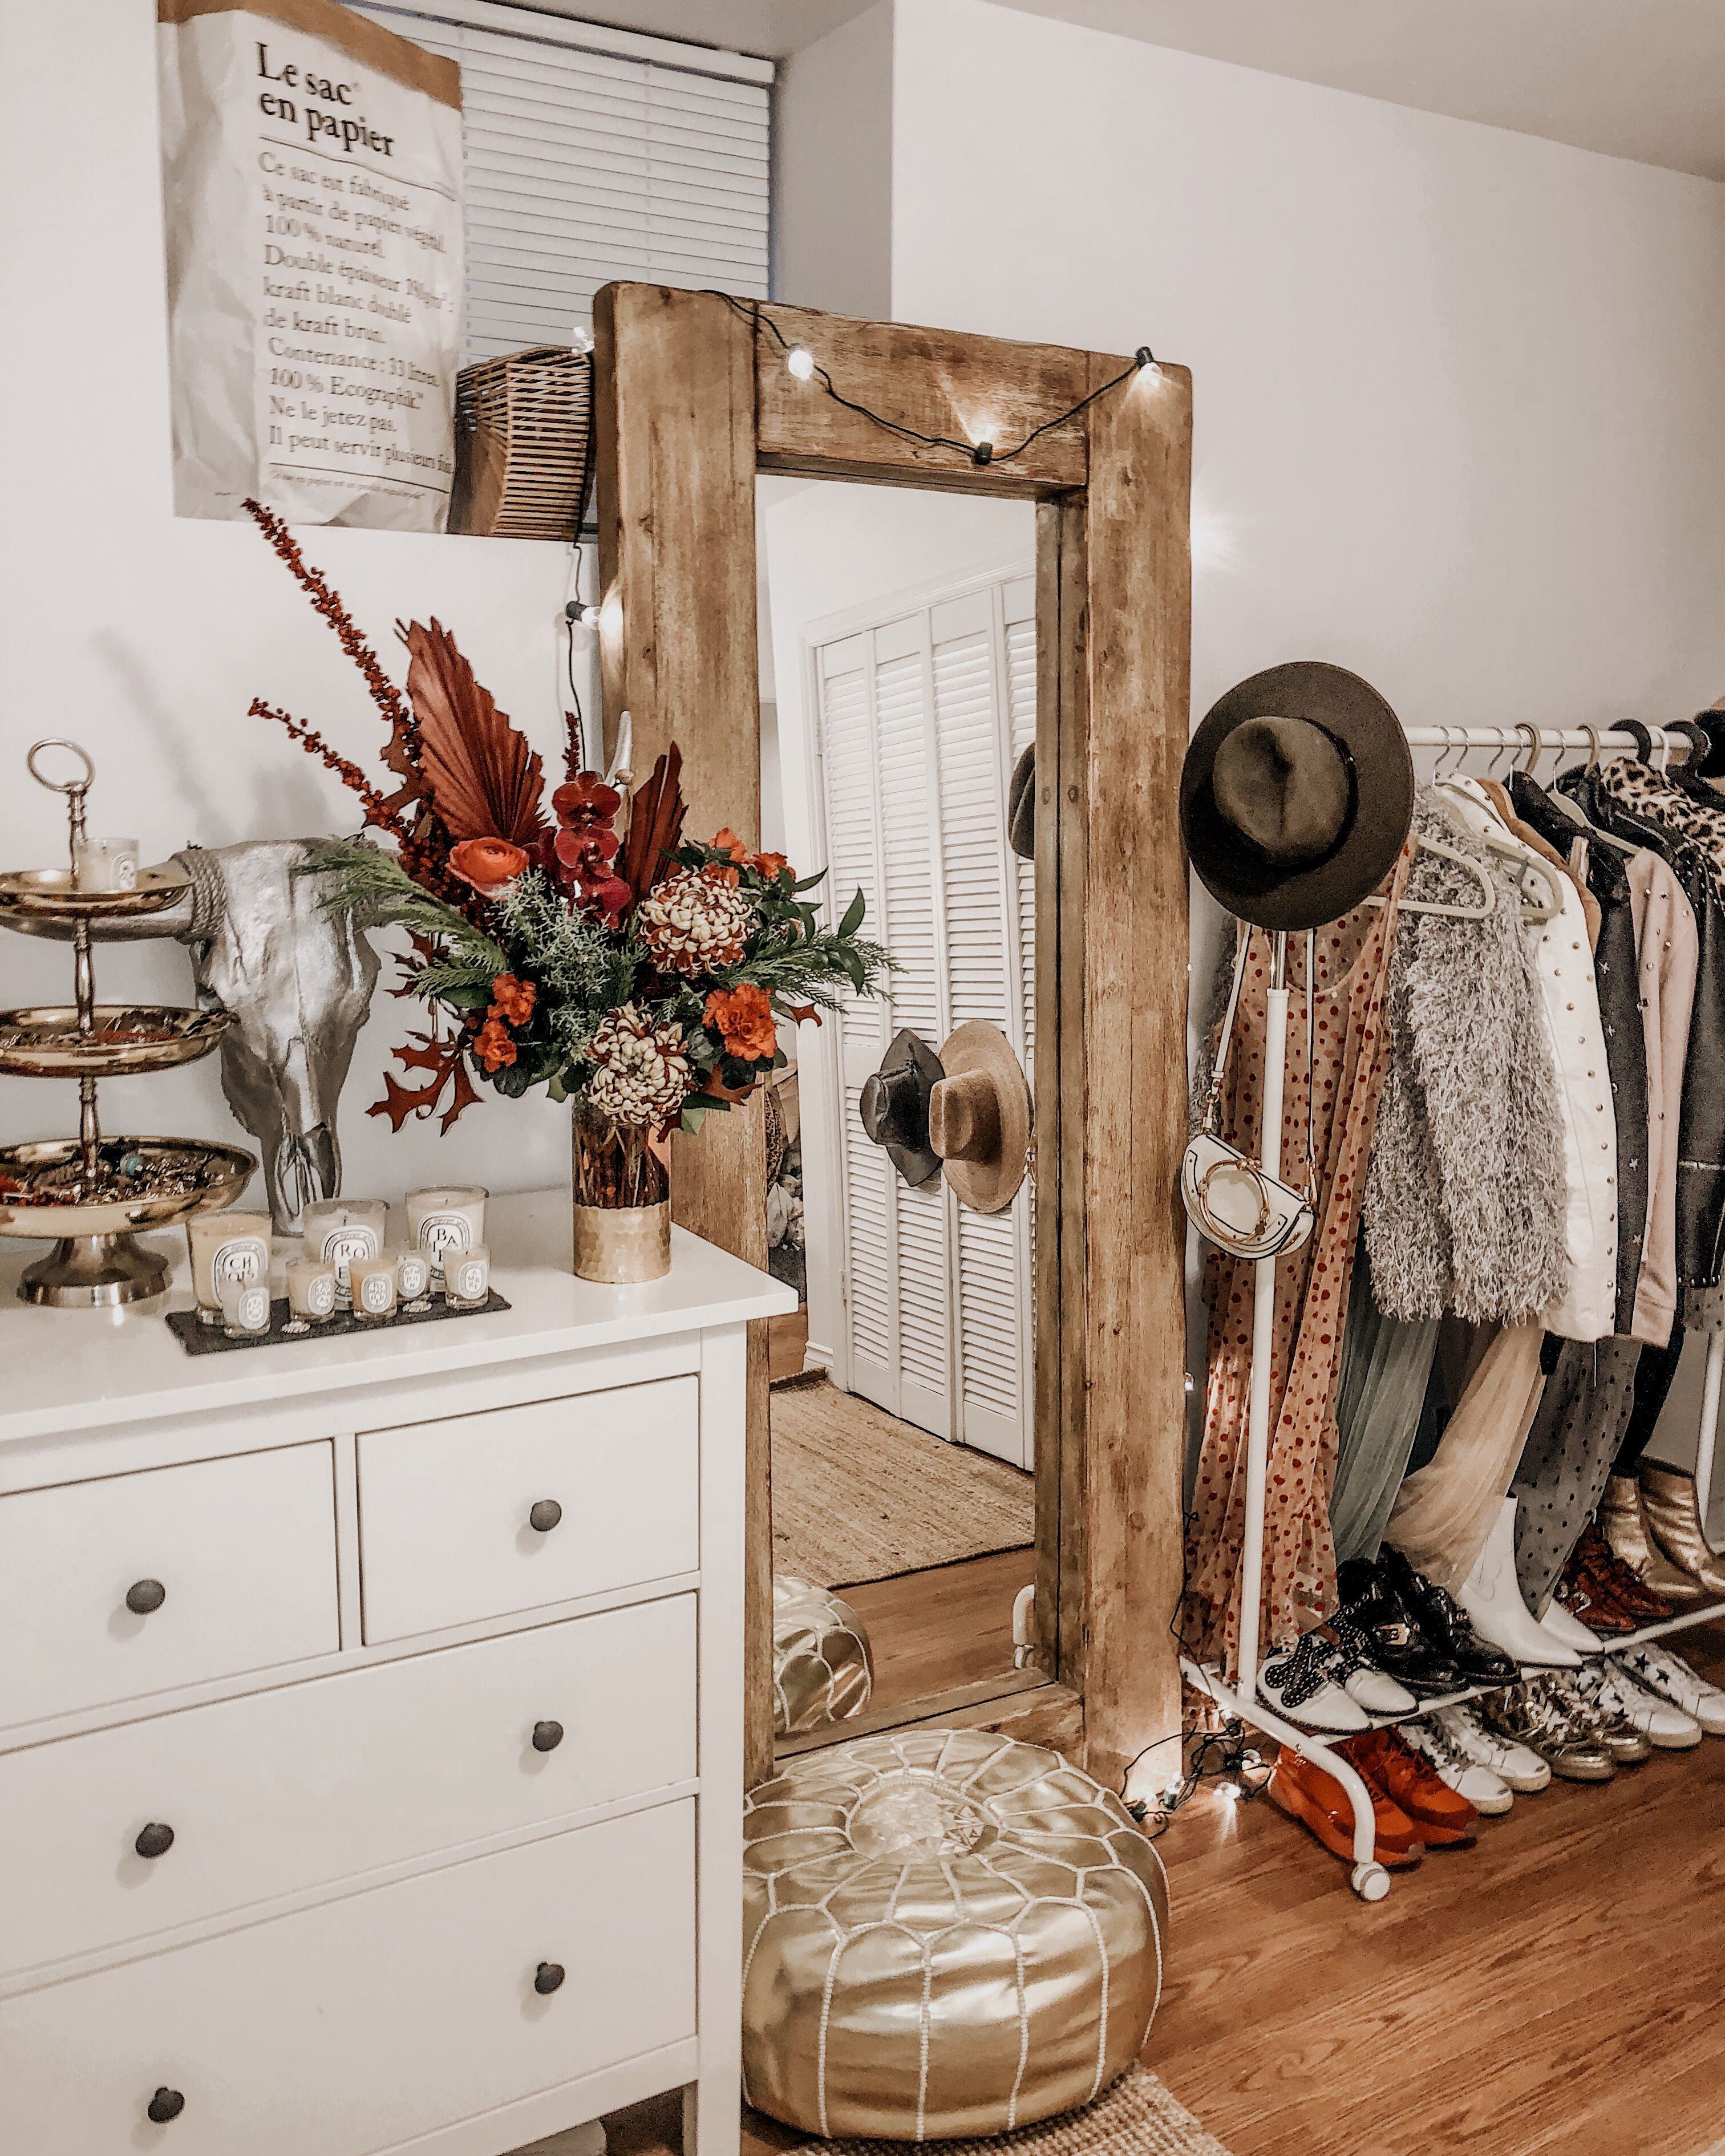 Inspiring Rustic Bedroom Ideas To Decorate With Style: WESTERN VINTAGE BOHO RUSTIC HOME DECOR AND CLOSET In 2019